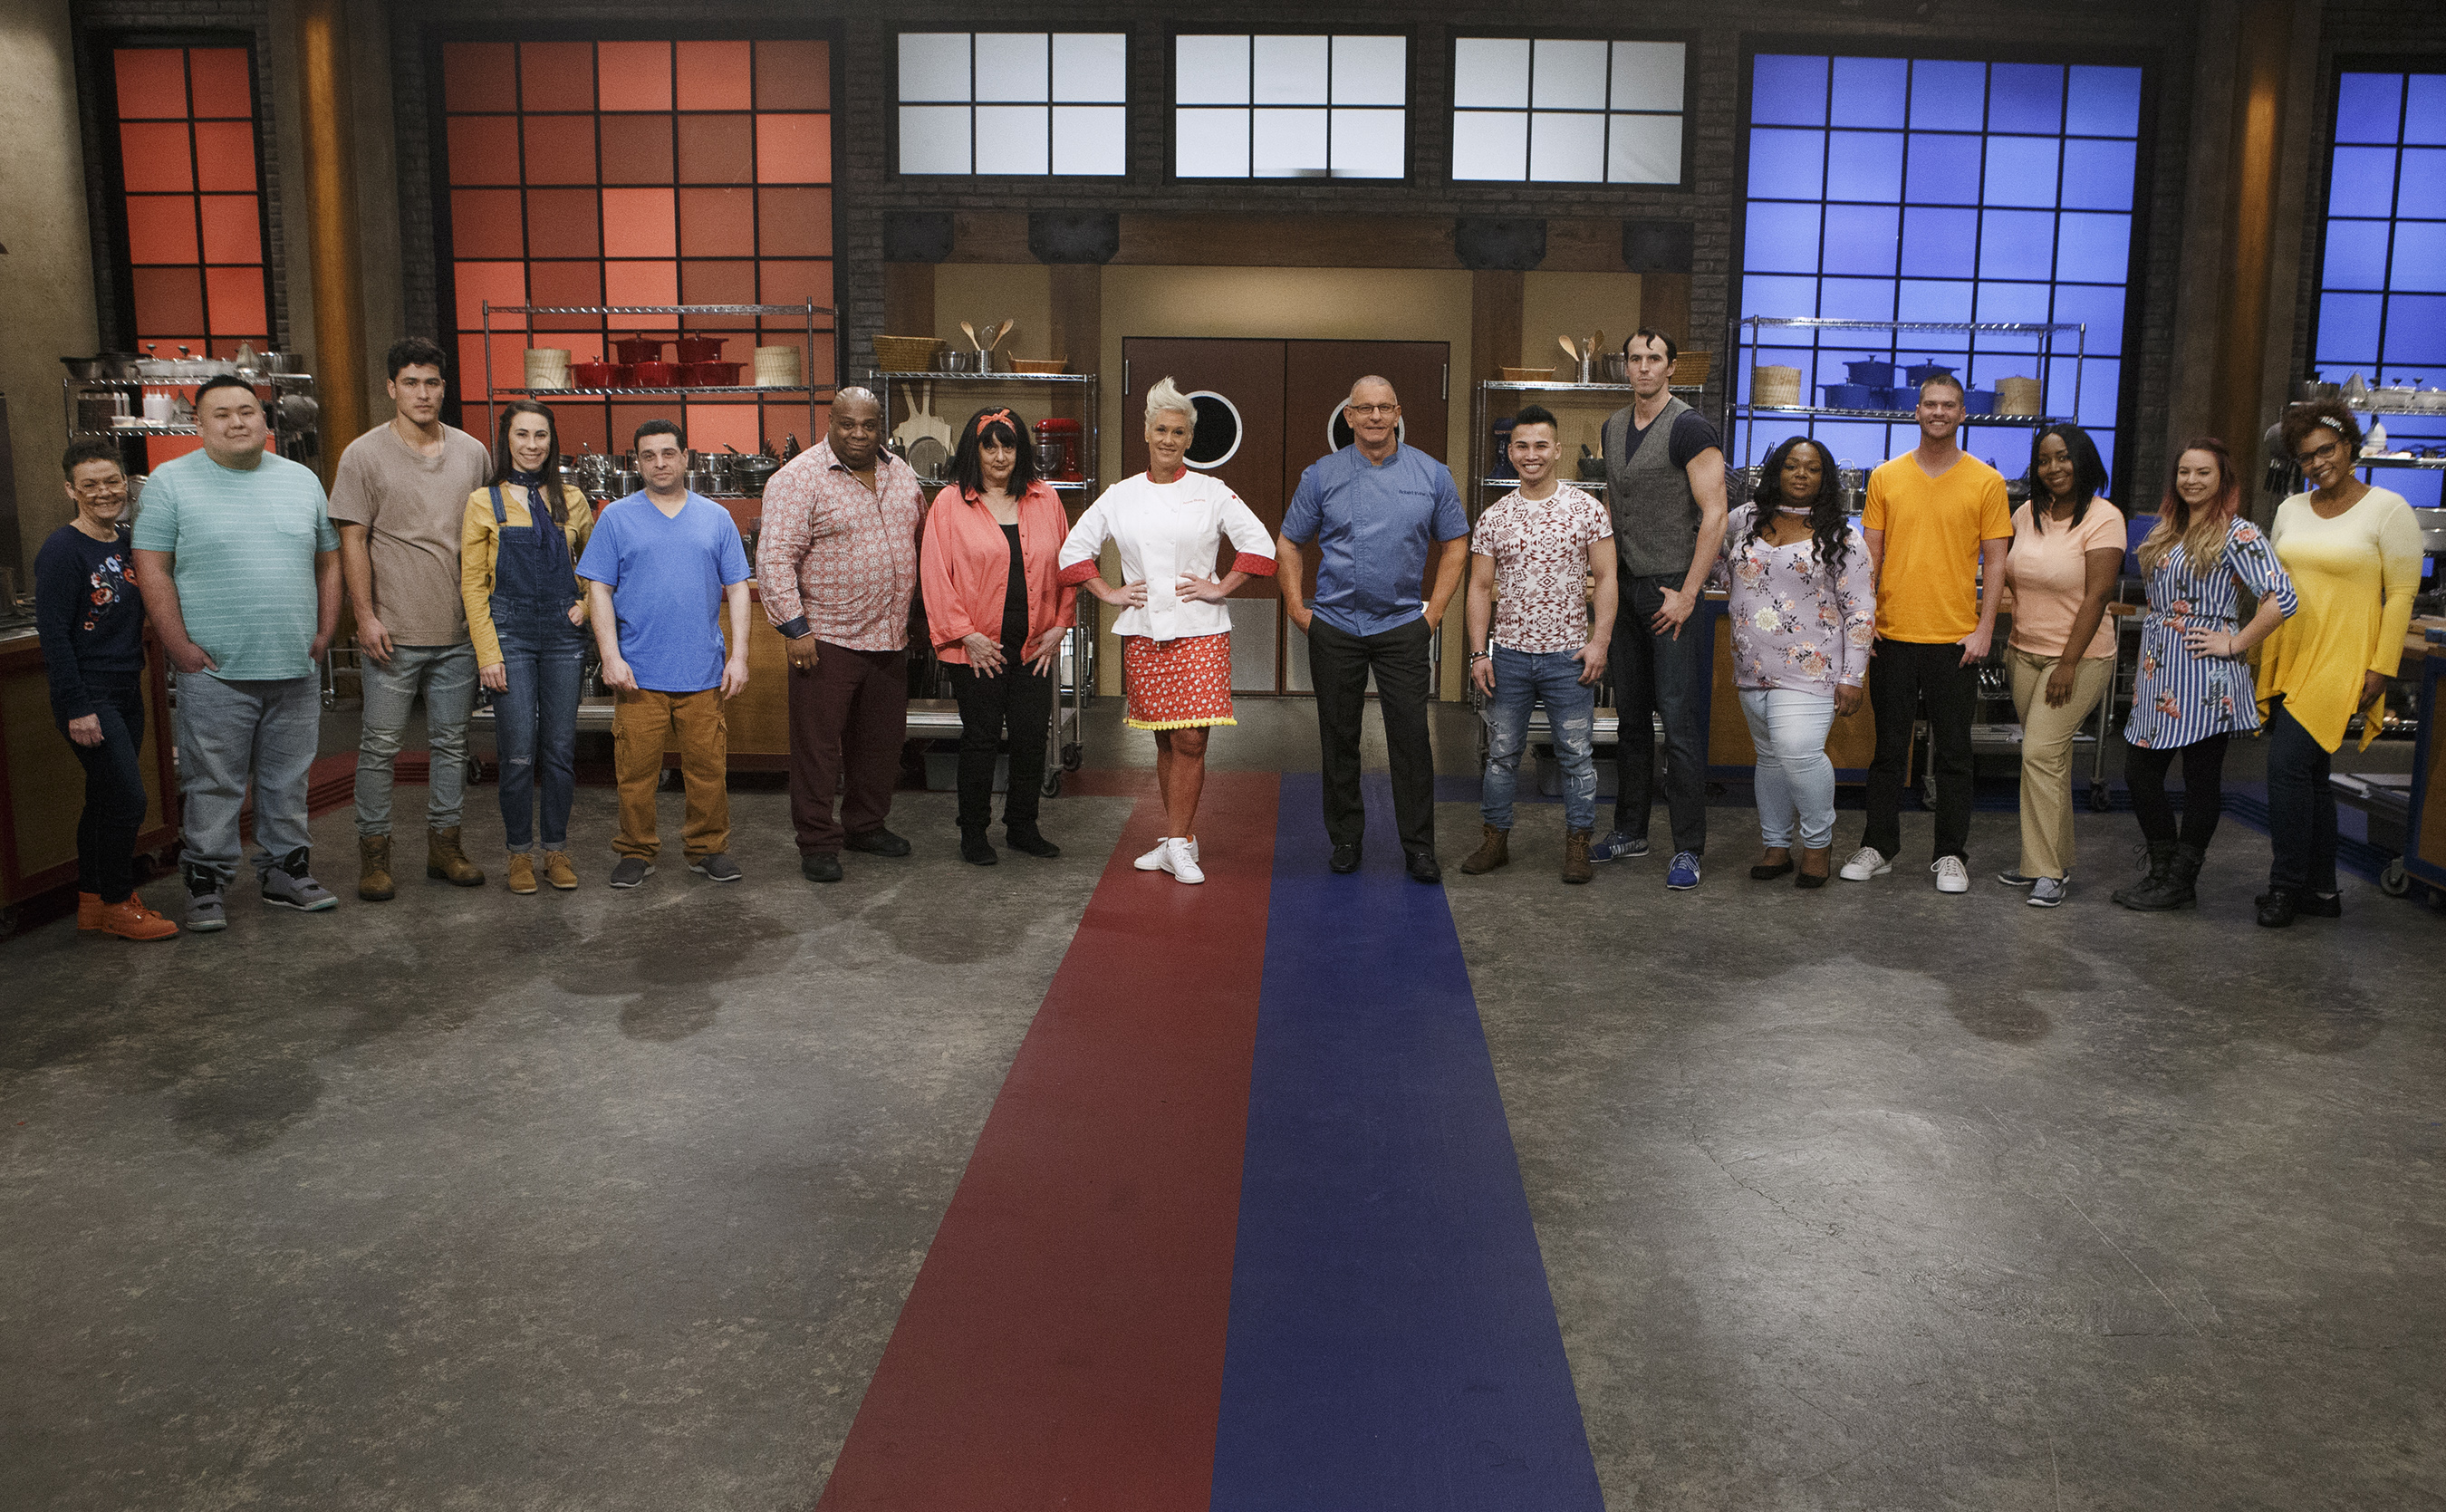 Anne Burrell and Robert Irvine with the recruits on Food Network's Worst Cooks in America